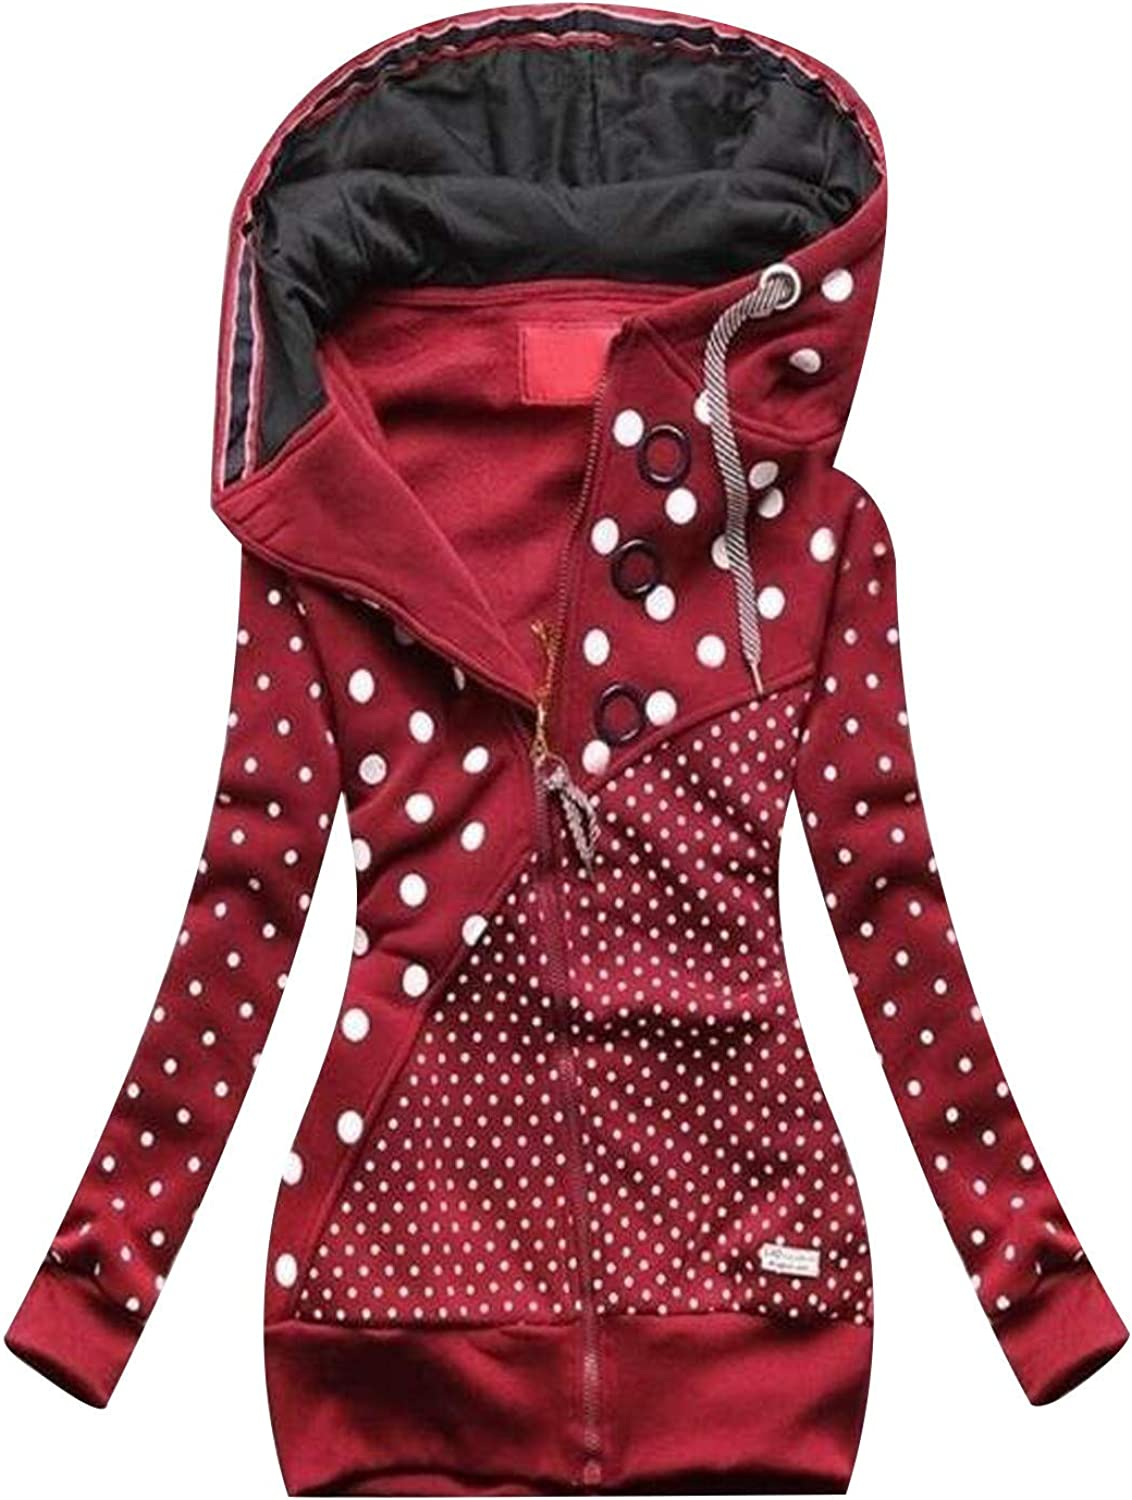 POTO Women Oversized Patchwork Jackets Hoodie Casual Floral Print Pullover Tops Fluffy Fleece Outwear Coats with Zipper